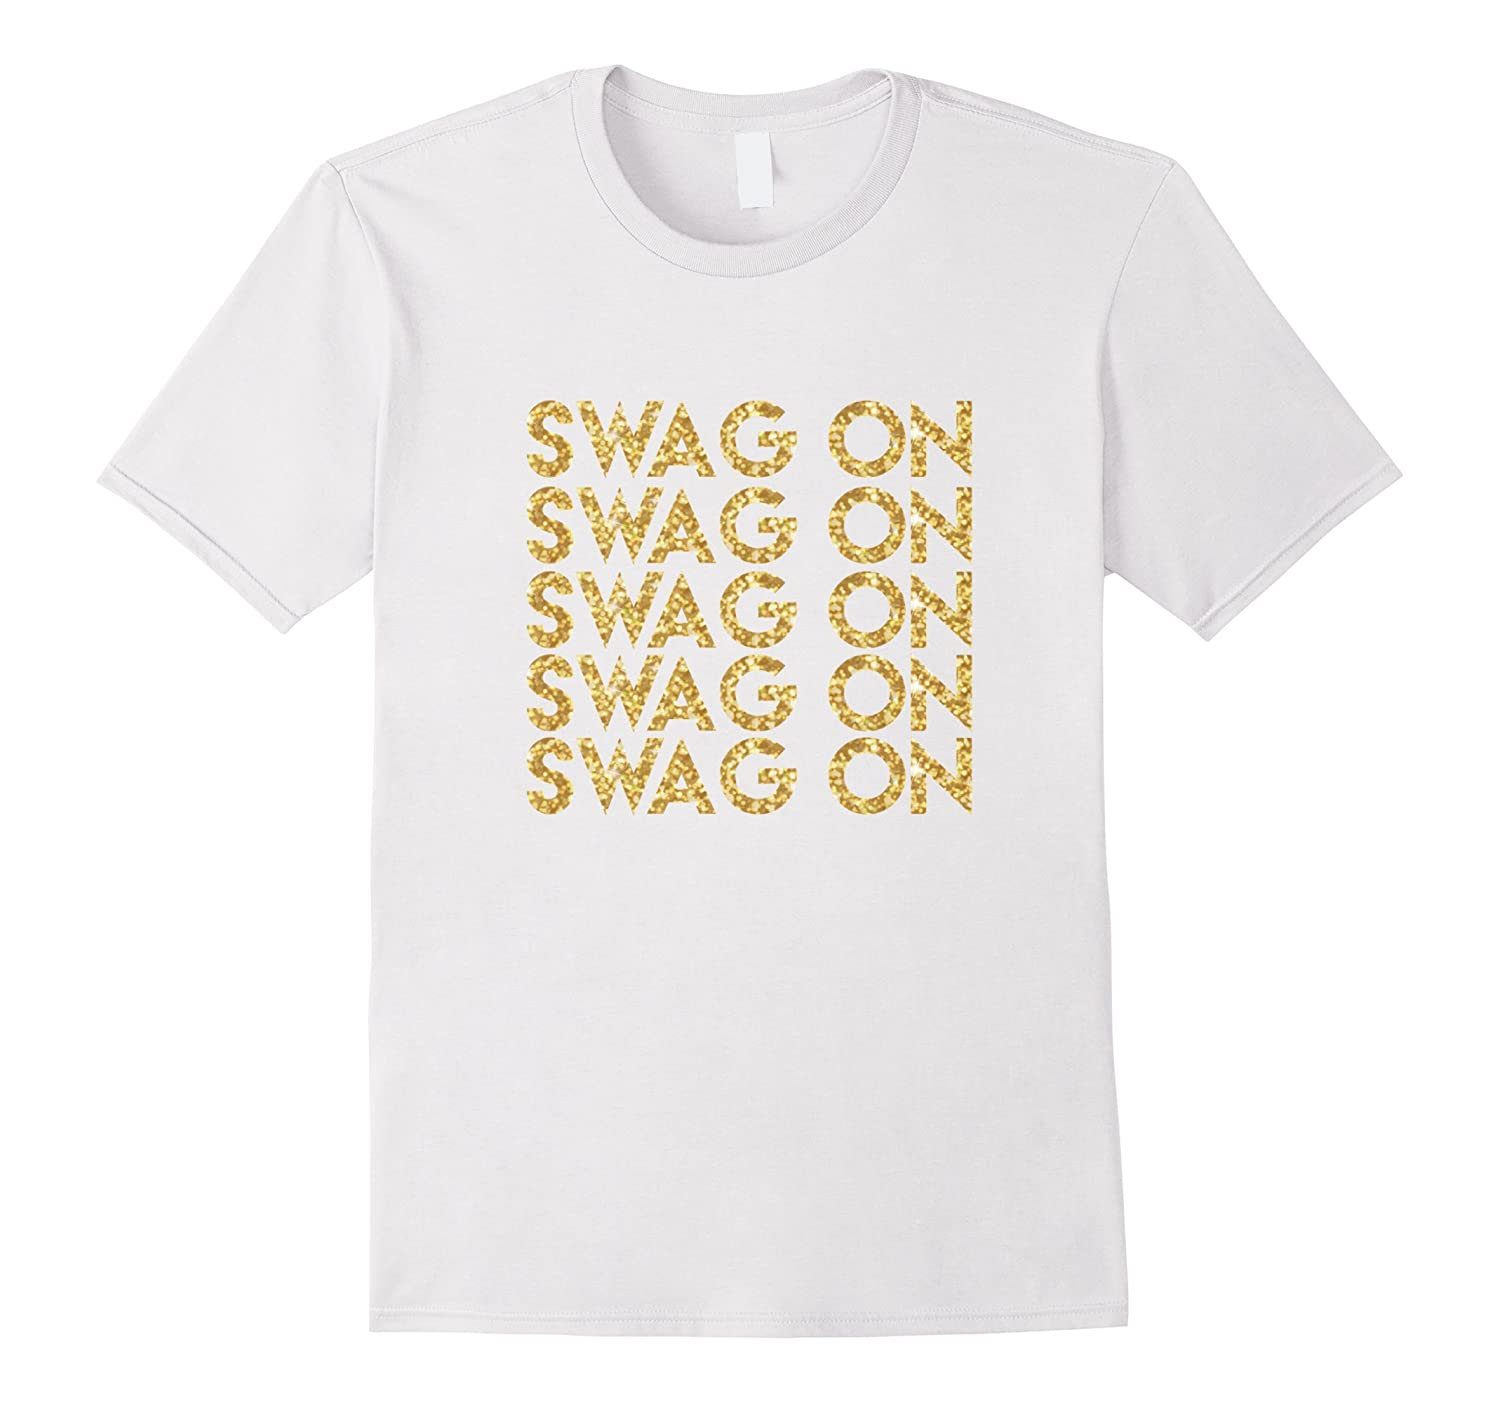 Seems magnificent Your swagger sucks t shirt something